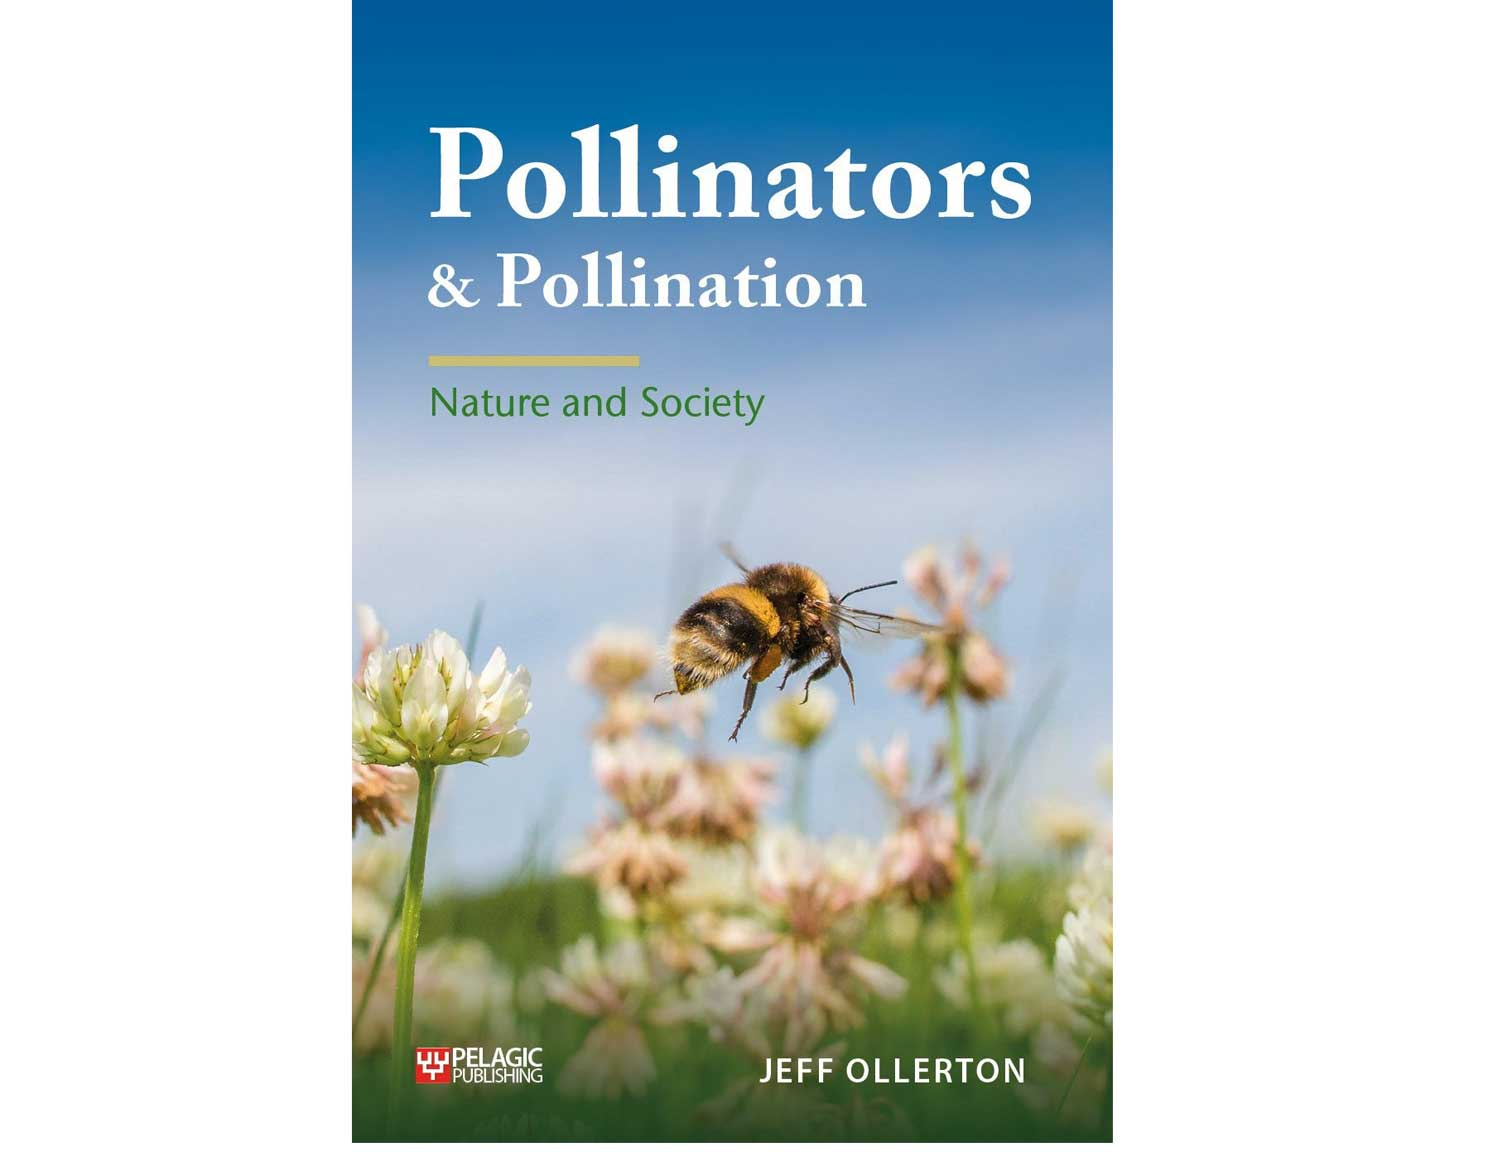 pollinators-pollination-pelagic